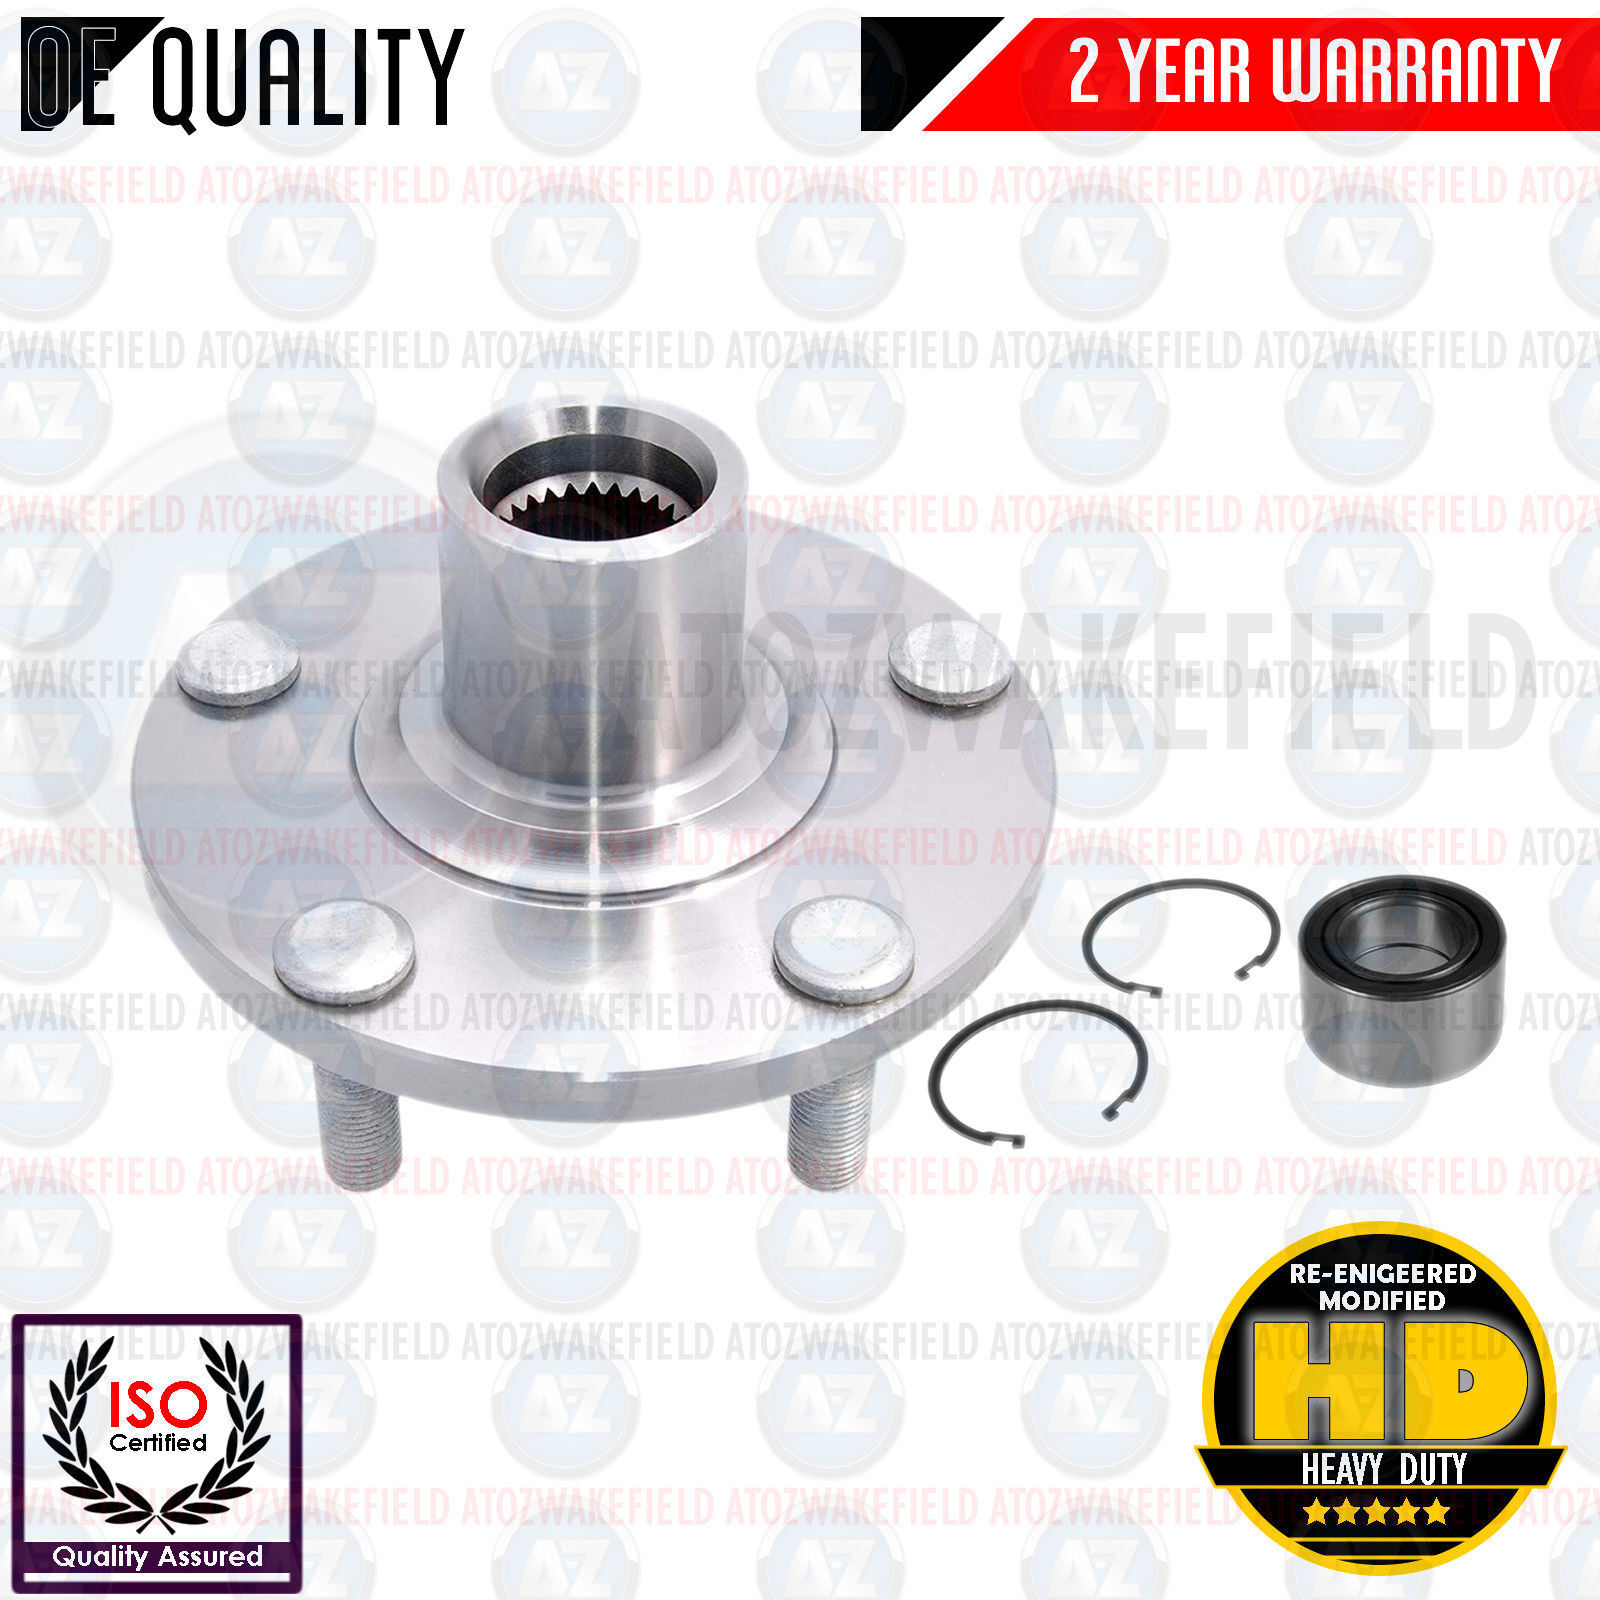 FOR NISSAN T30 X-TRAIL 2.0 2.2 2.5 DCi FRONT WHEEL BEARING HUB FLANGE KIT NEW